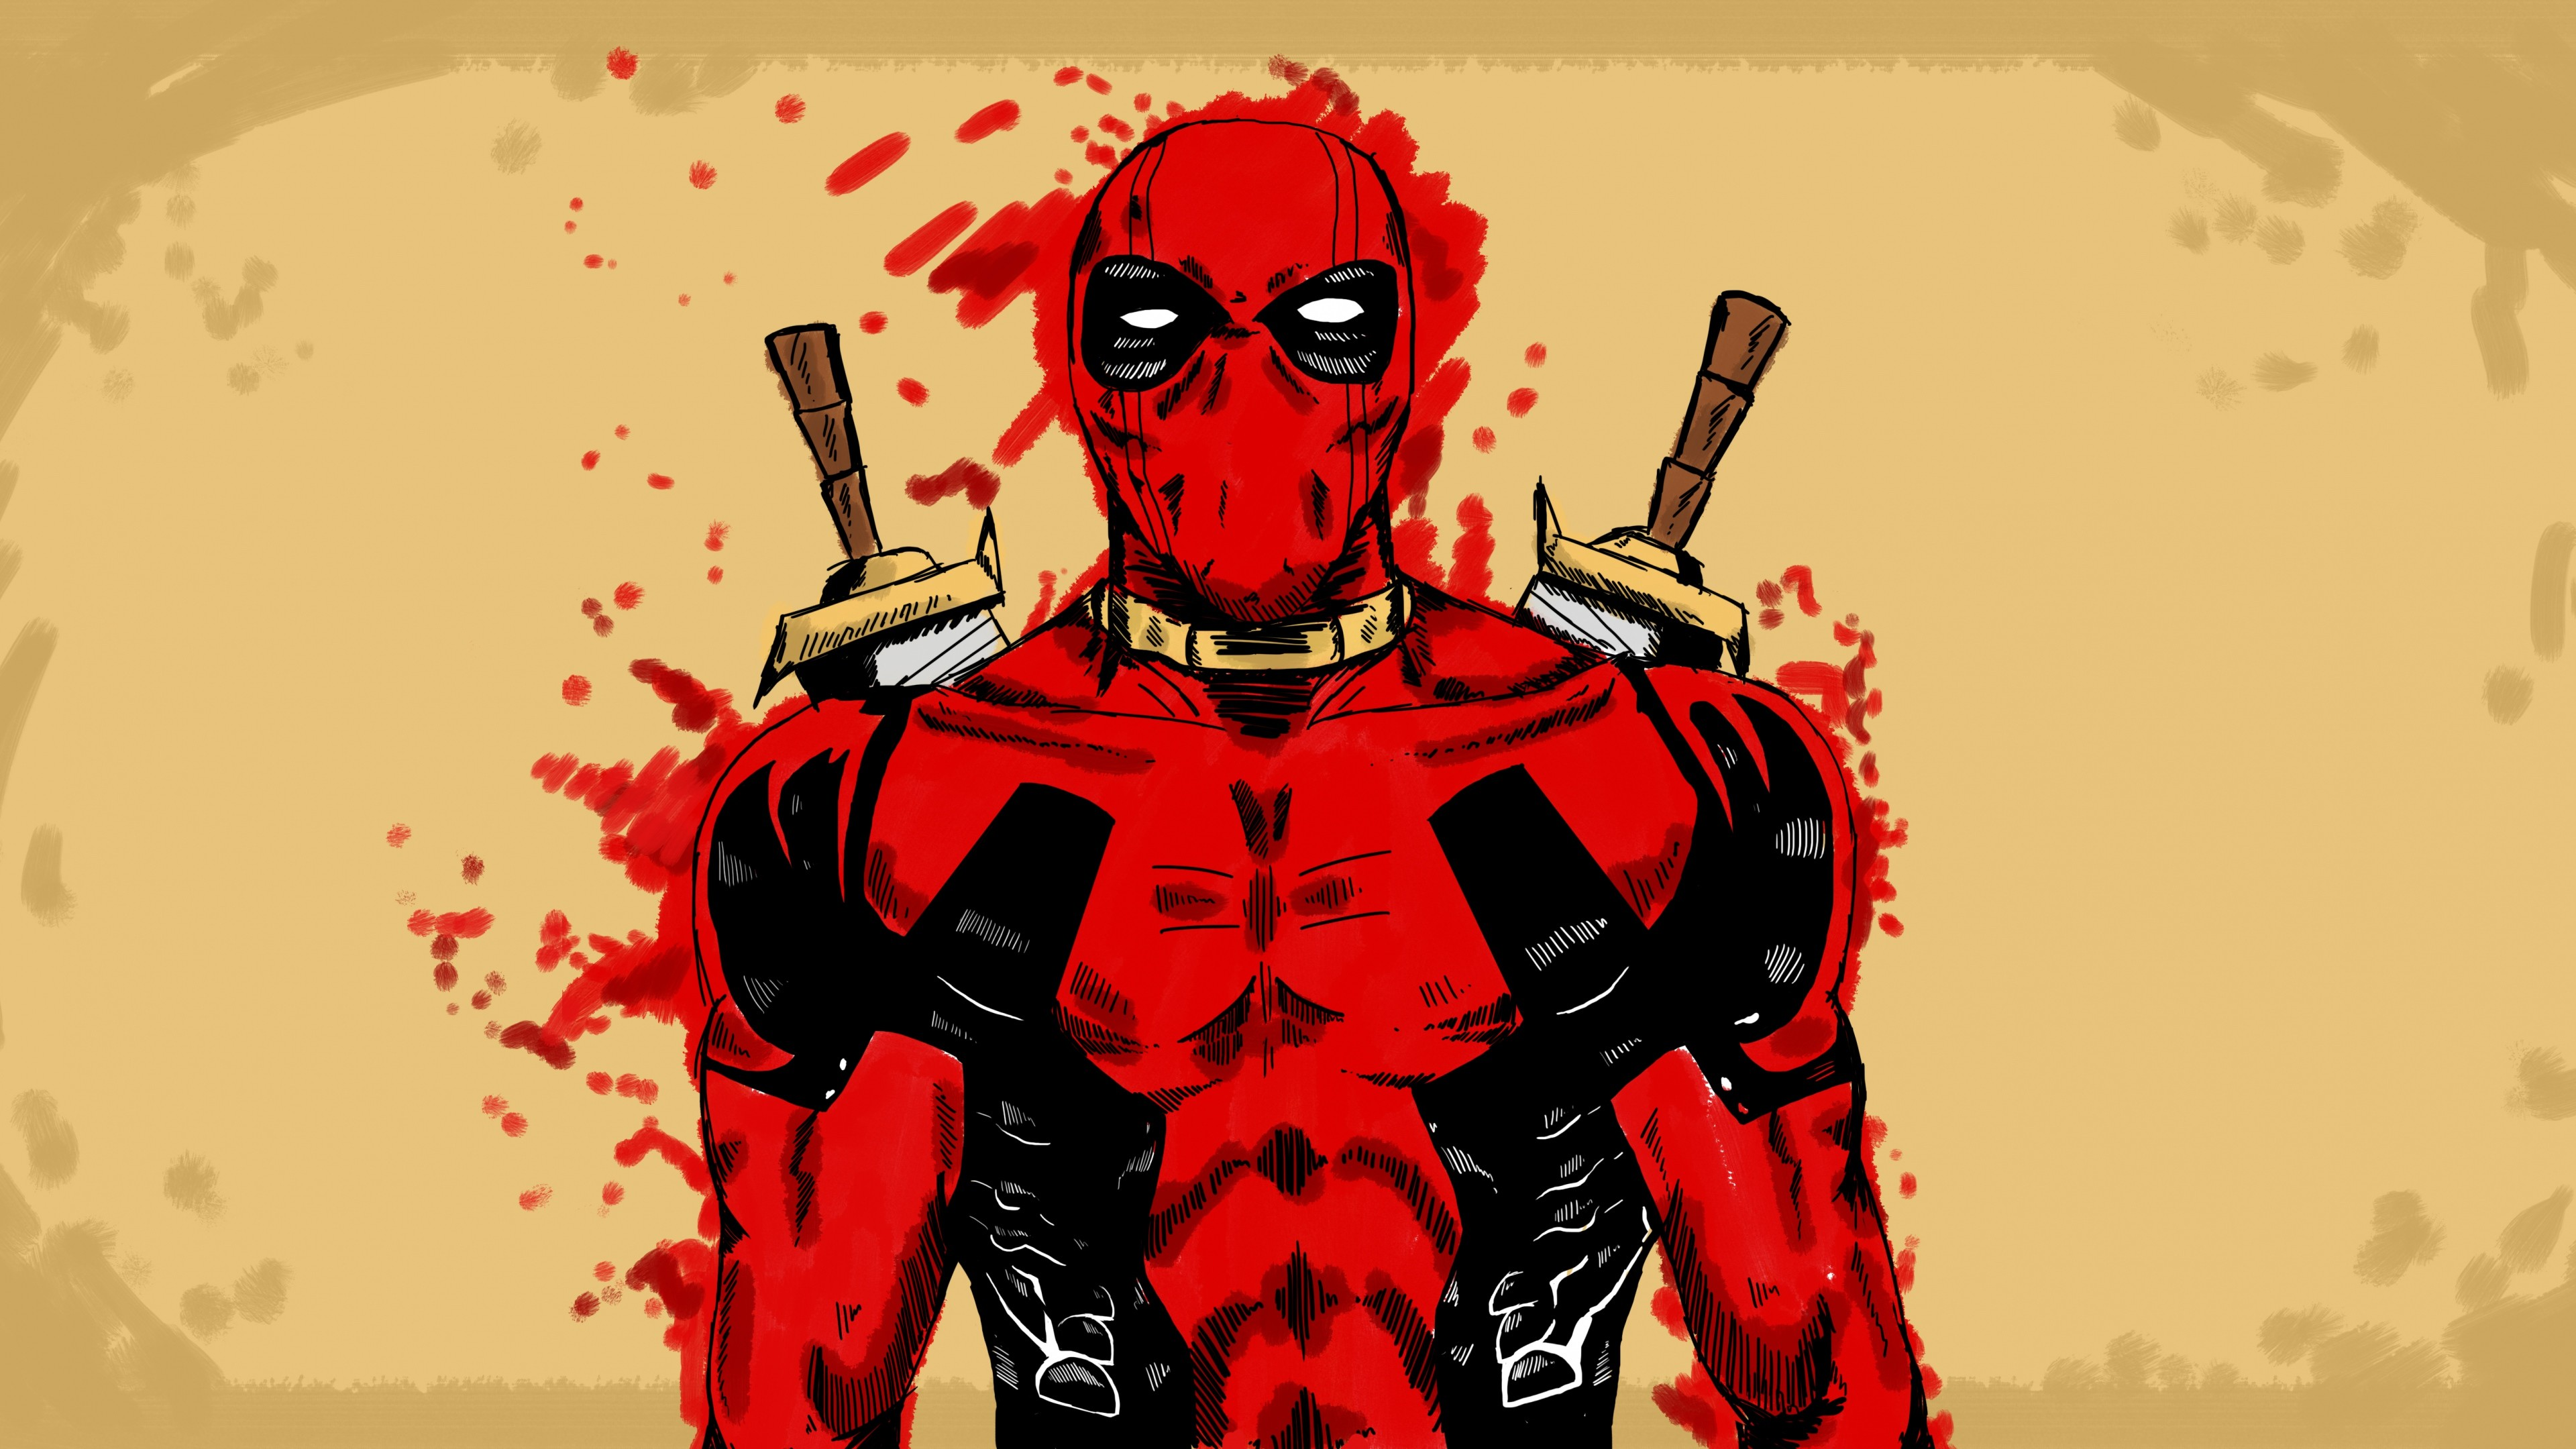 Res: 3840x2160, Deadpool Marvel Comic Art (2048x1152 Resolution)